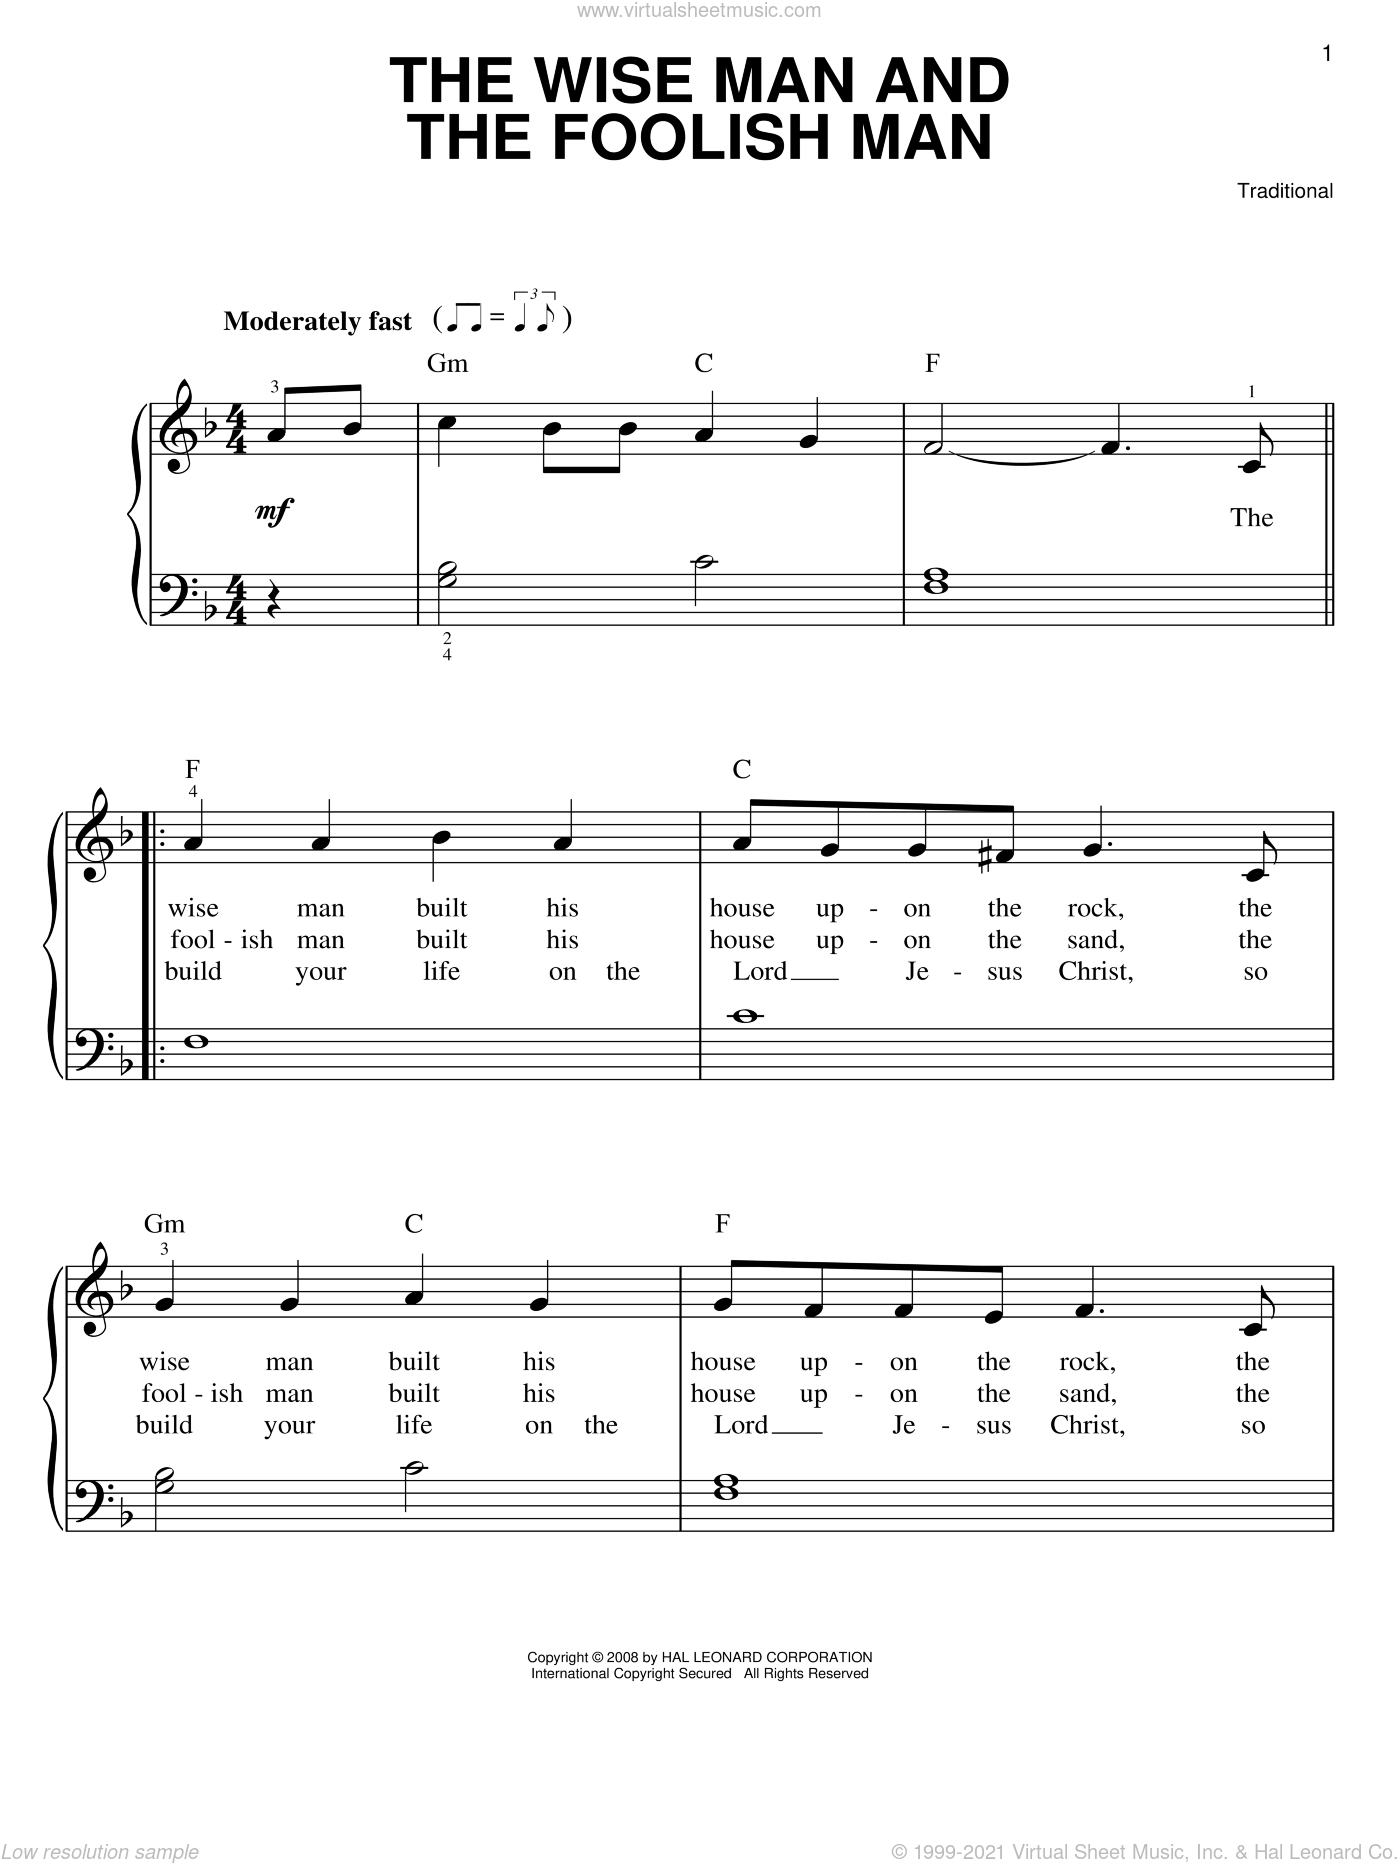 The Wise Man And The Foolish Man sheet music for piano solo, easy skill level